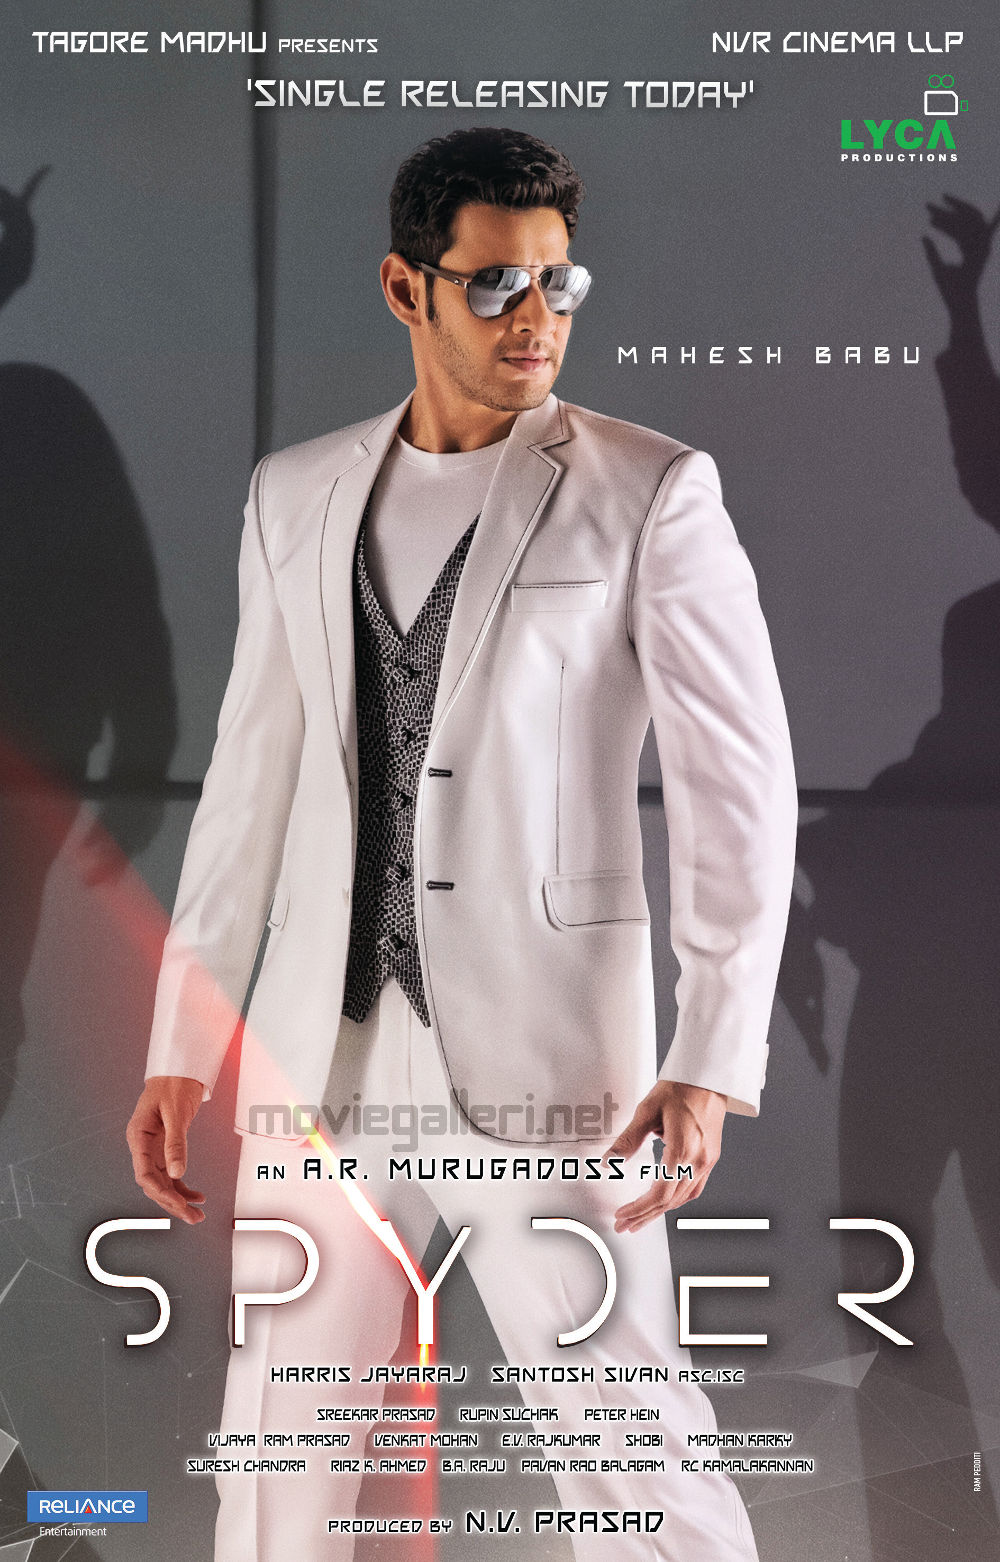 Actor Mahesh Babu's Spyder Movie Single Releasing Today Posters